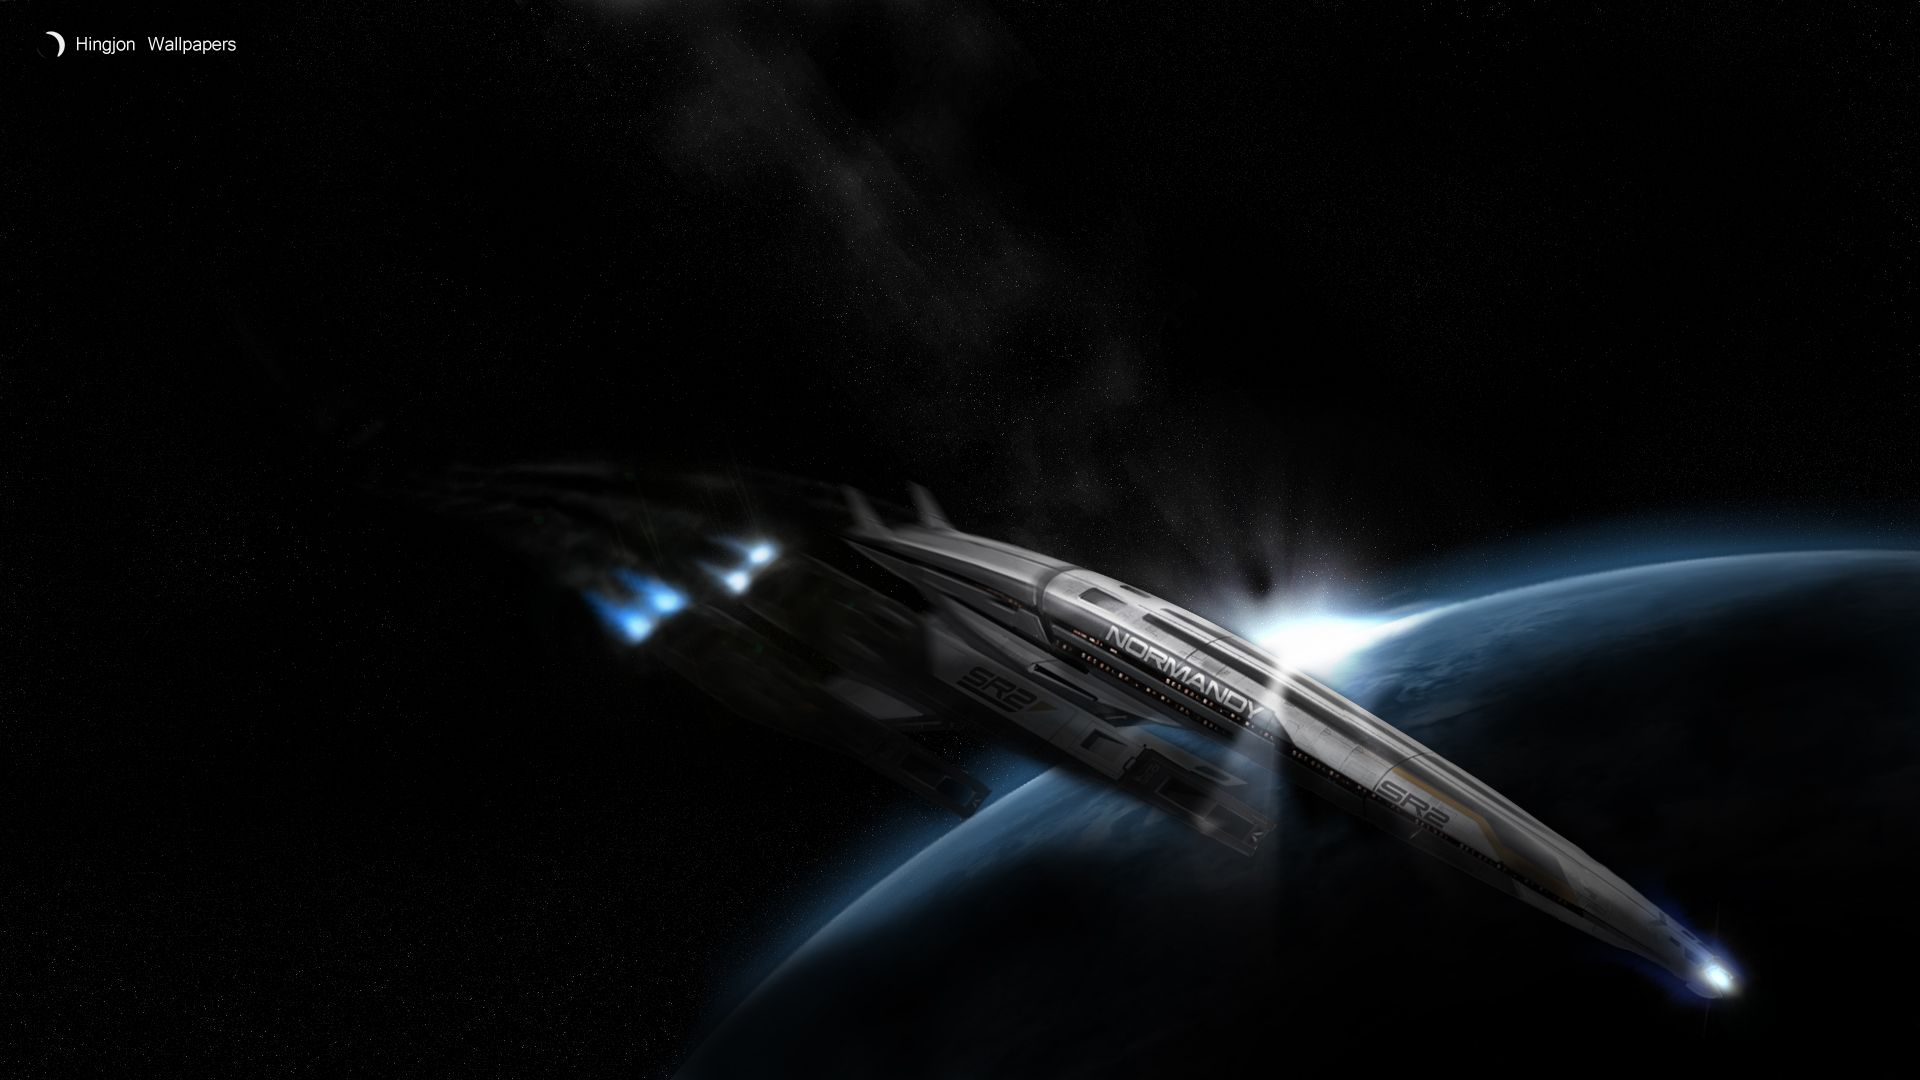 Mass Effect 2: Normandy SR2 by HingjonWallpapers